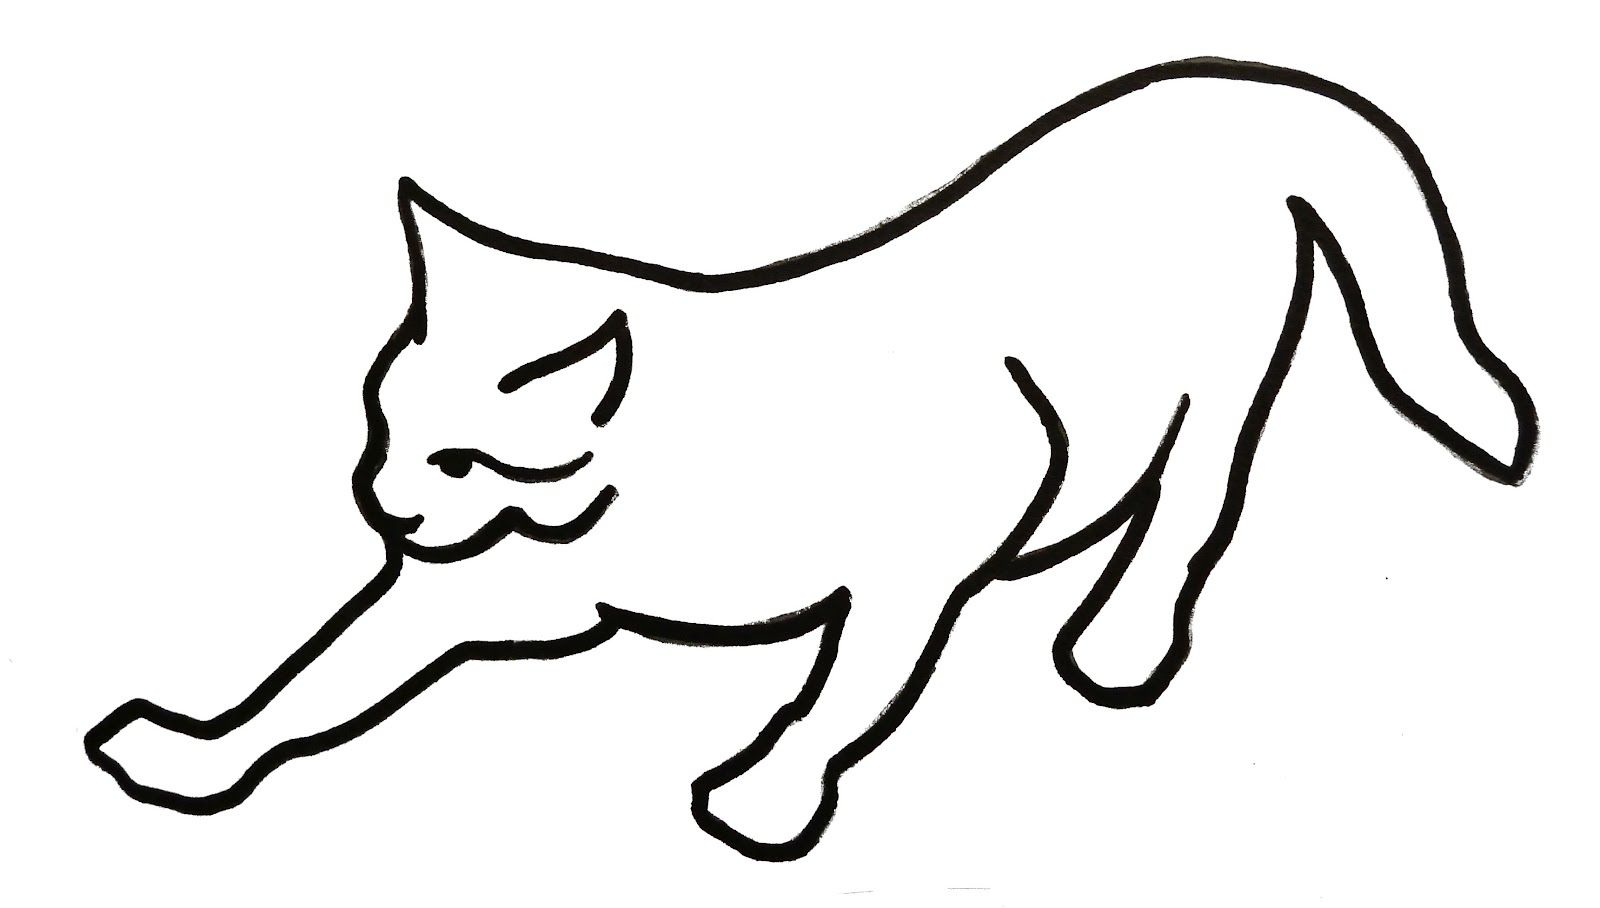 Cat clip art simple. Picture of line drawing